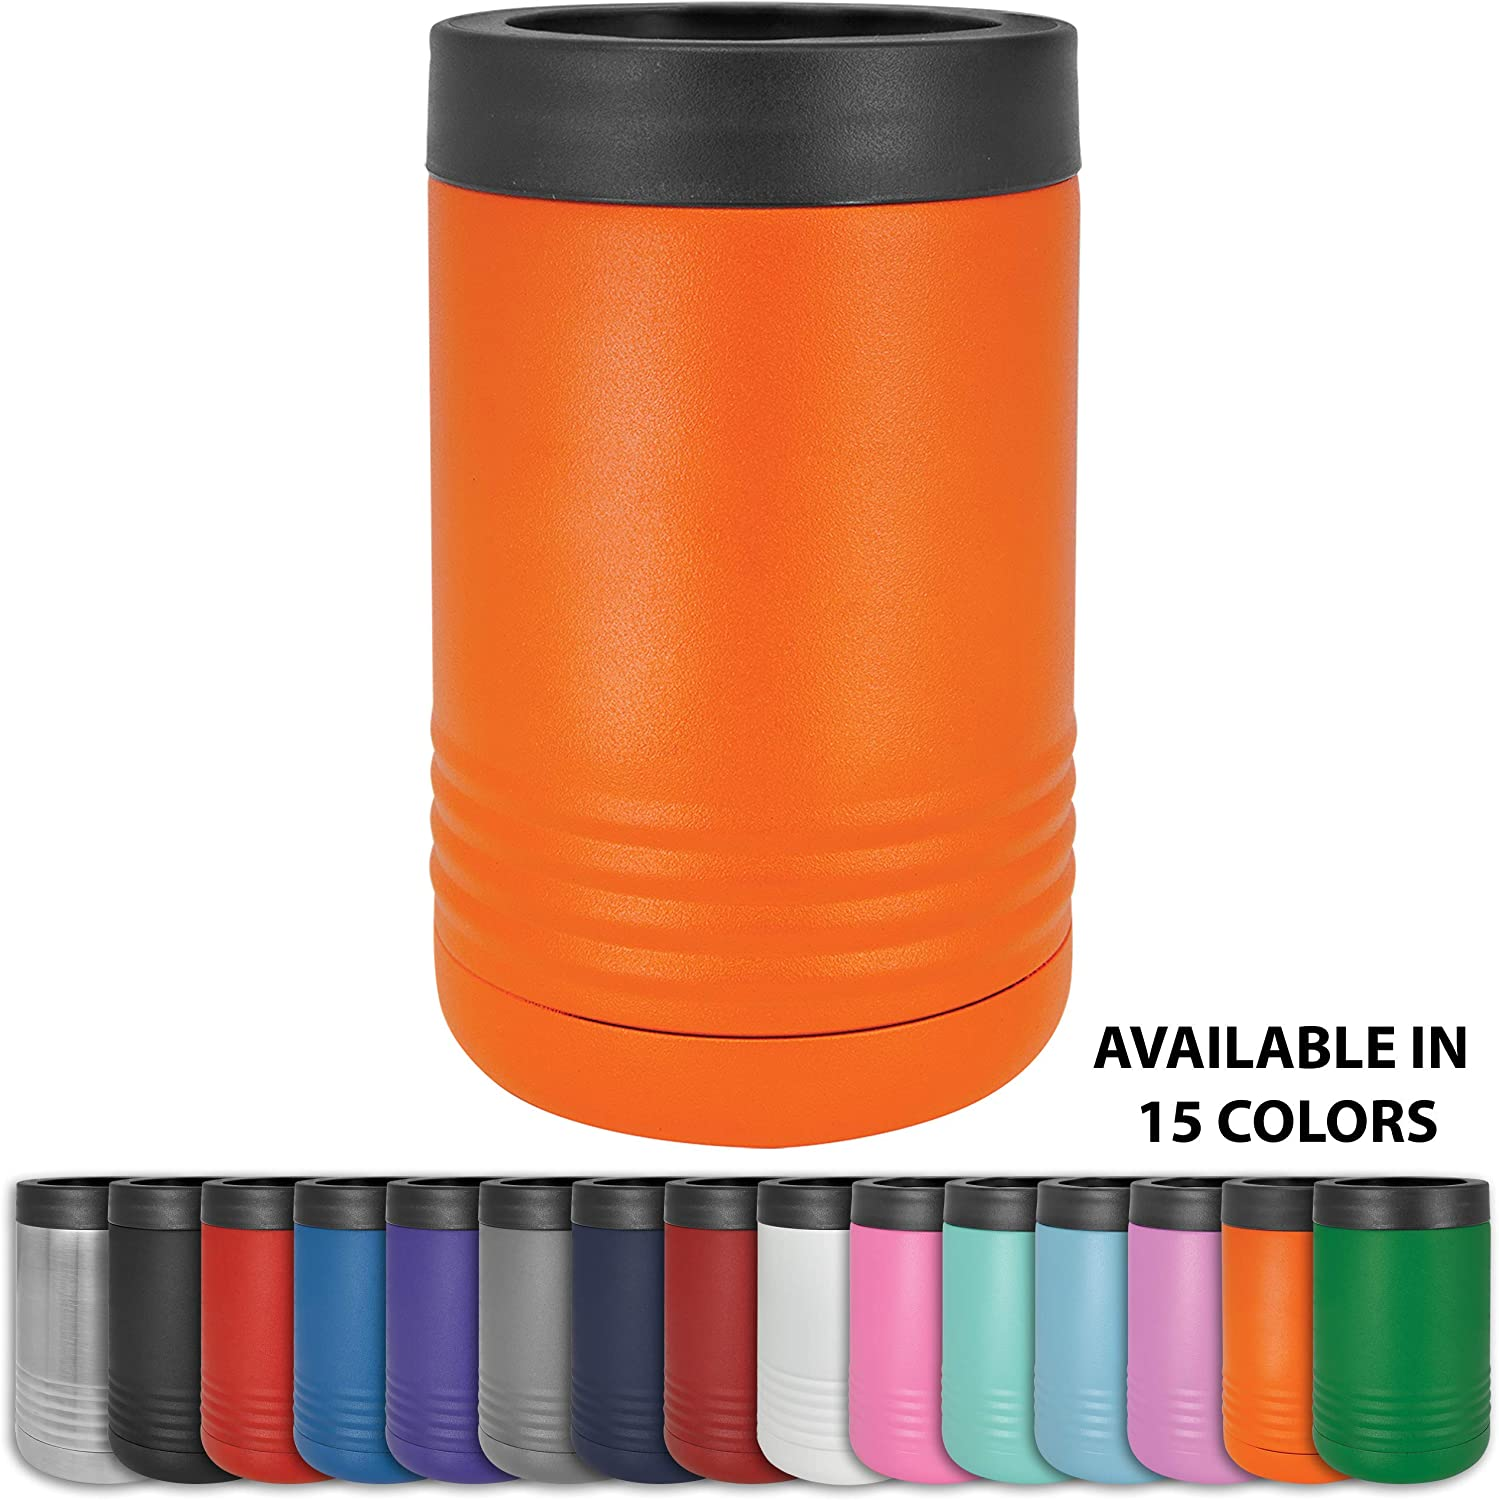 Clear Water Home Goods - 12 oz Stainless Steel Double Wall Vacuum Insulated Can or Bottle Cooler Keeps Beverage Cold for Hours - Powder Coated Orange